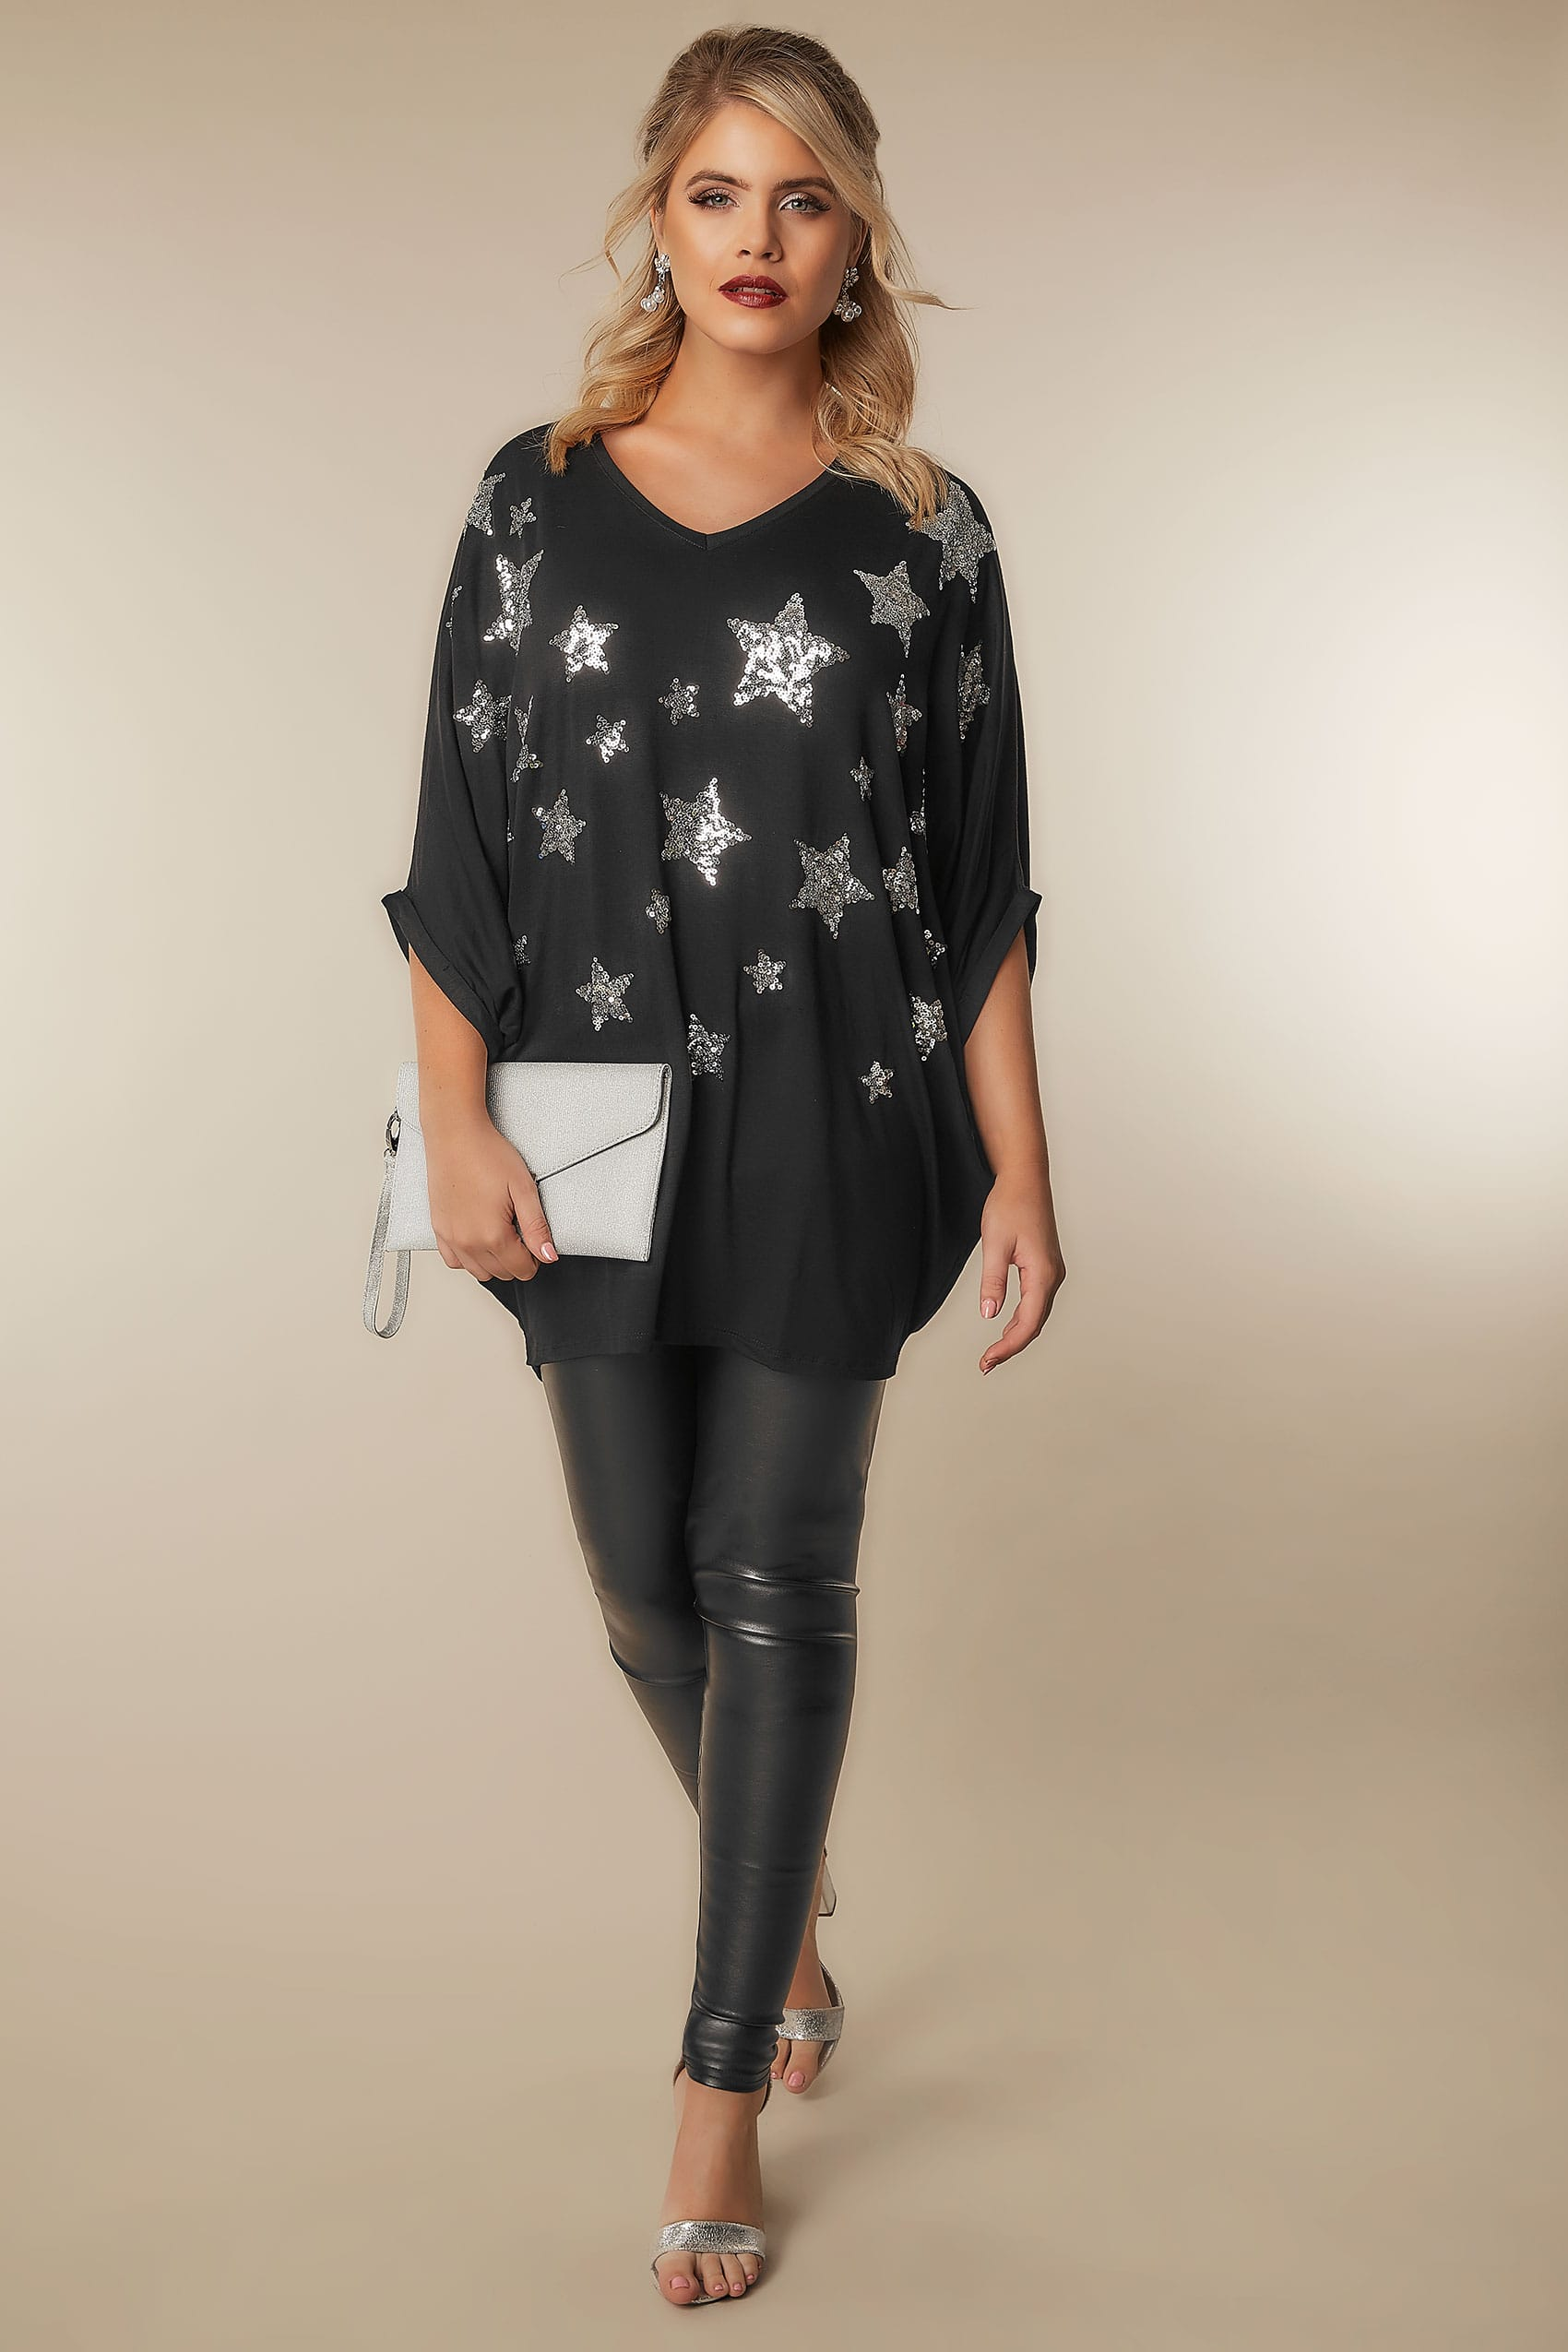 Yours london black star sequin embellished oversized jersey top with batwing sleeves 16 to 32 - Best shows to see in london ...